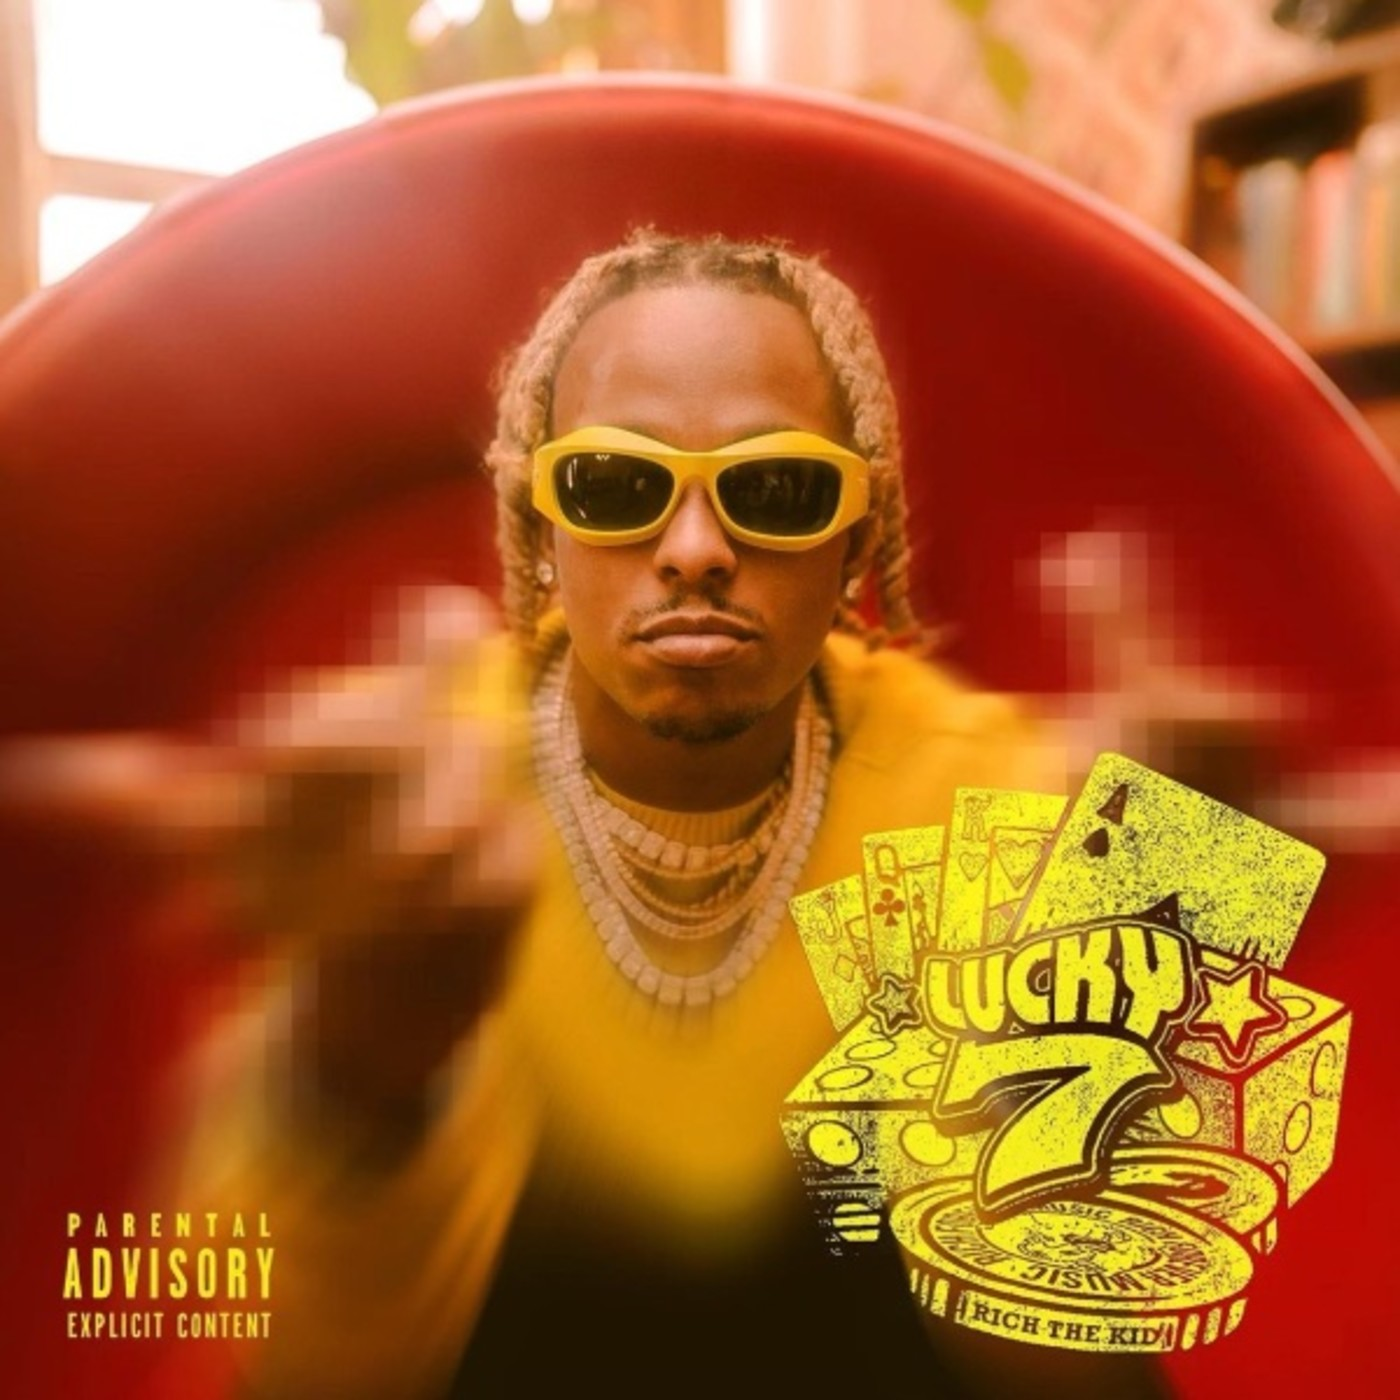 Rich the Kid Shares 'Lucky 7' EP f/ DaBaby, Lil Mosey, Rubi Rose, and More  | Complex